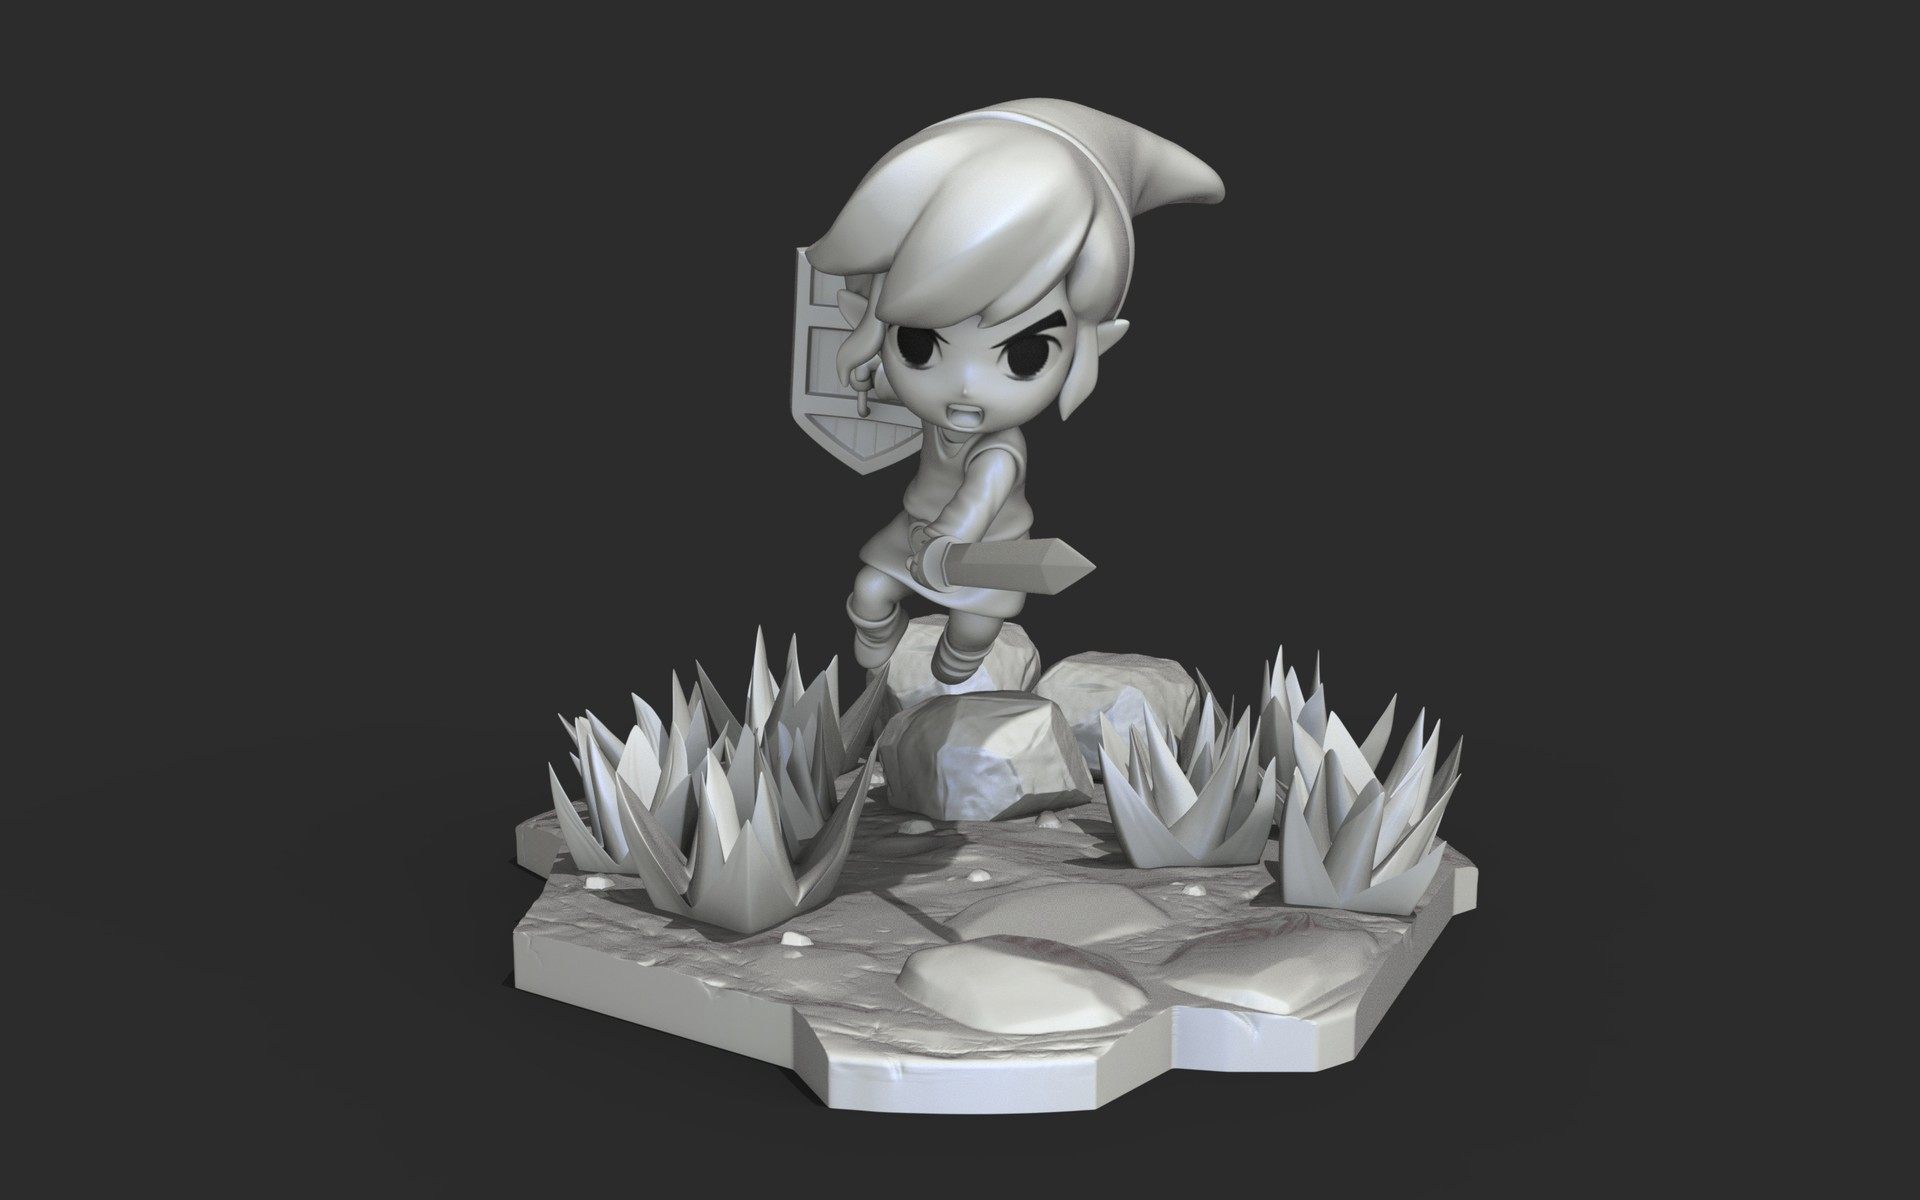 Sculpt GameCharacter